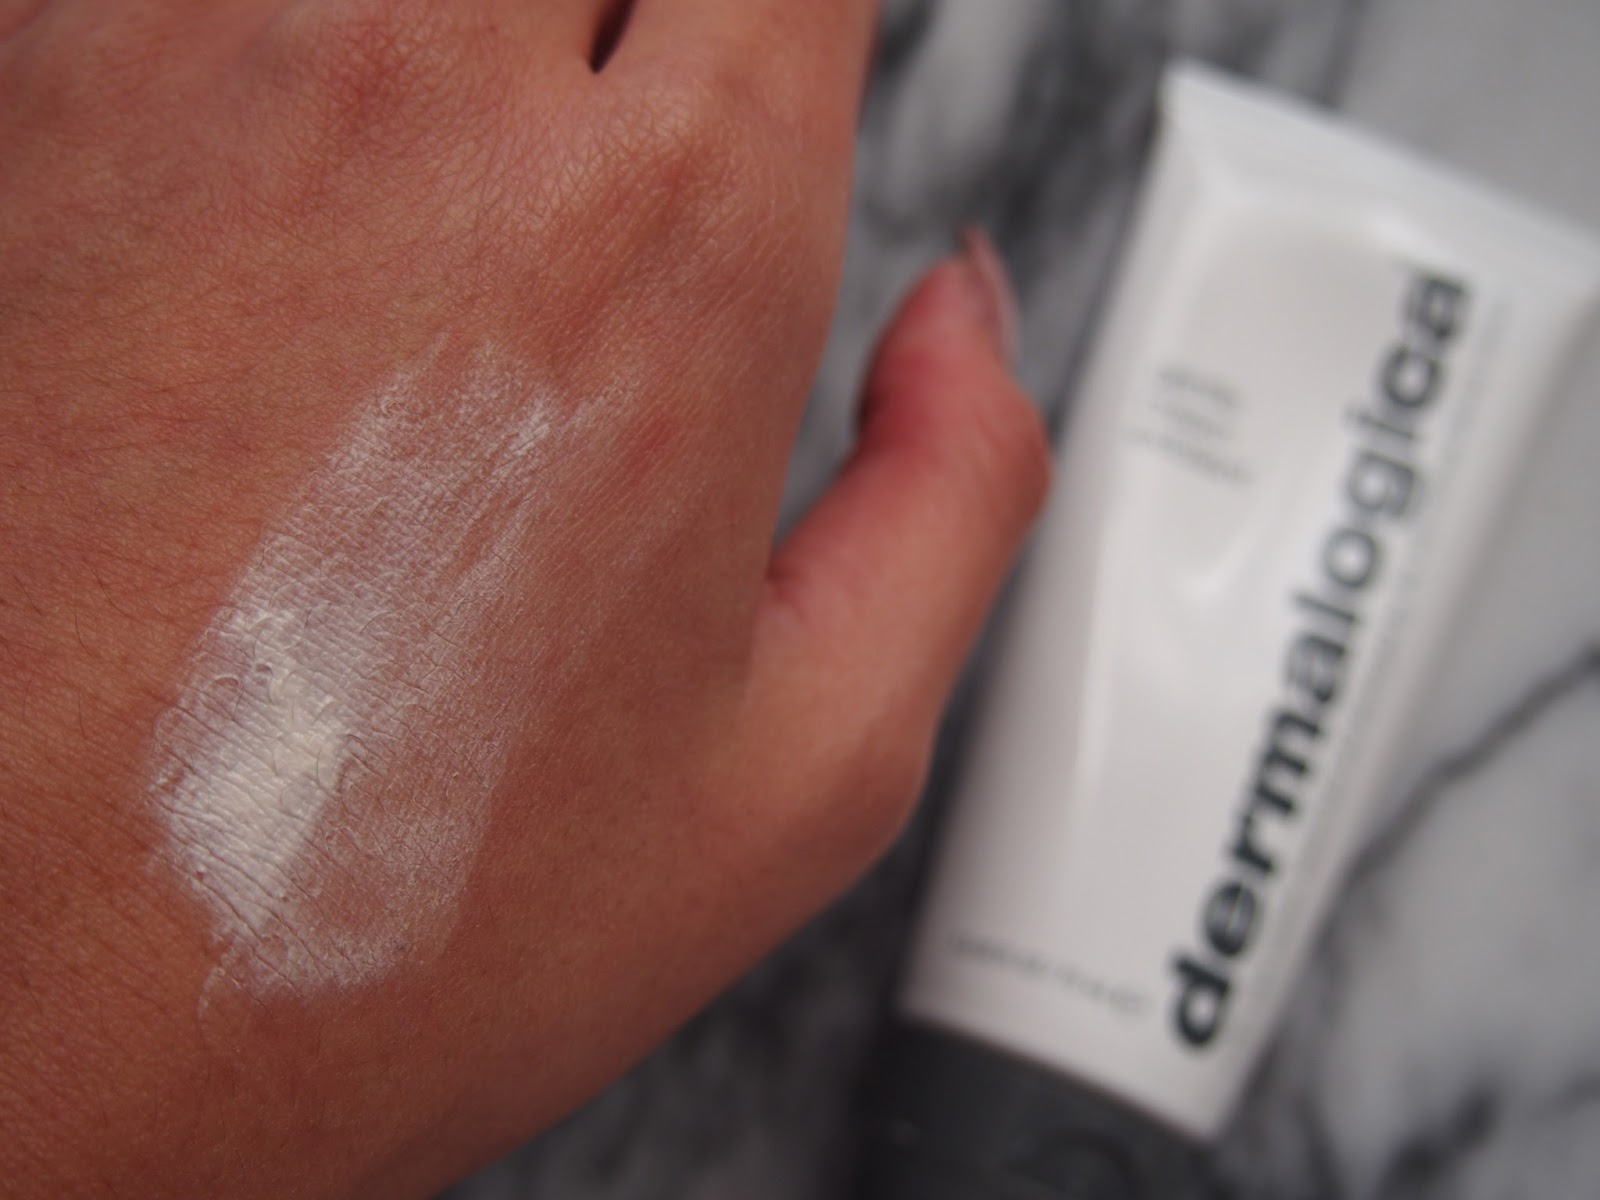 Review Dermalogica Gentle Cream Exfoliant Shrinking Wallet A Dha Hologram 15 Min After Application It Only Faded Away Slightly As Can Be Seen And Compared In The Pictures Above